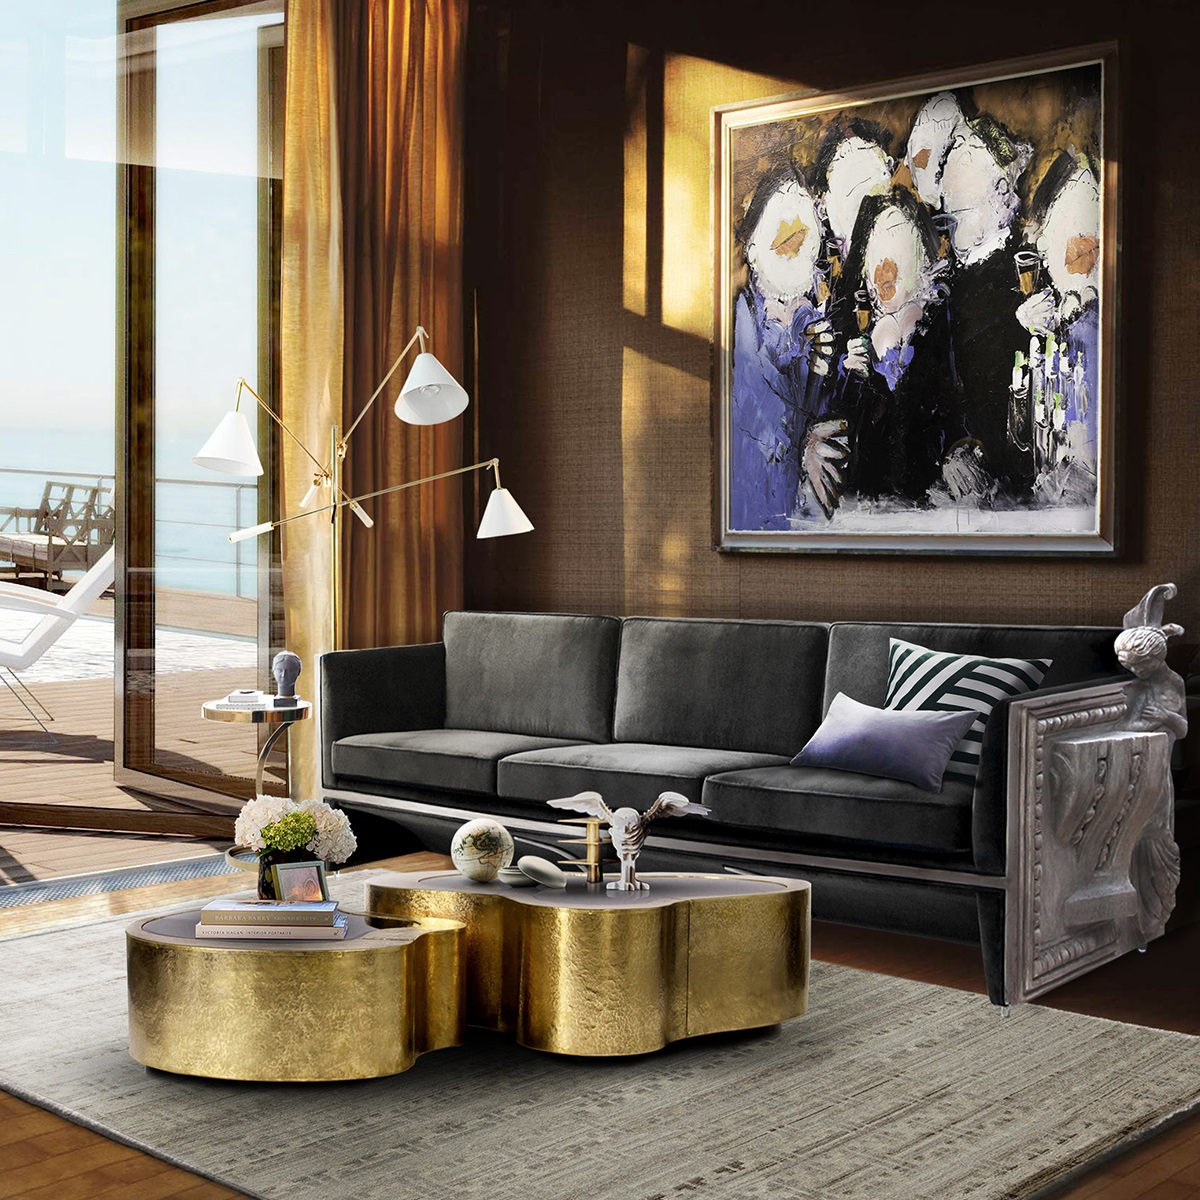 Cras blandit tellus congue varius feugiat. 5 Luxury Coffee Tables to glam up your living room wave